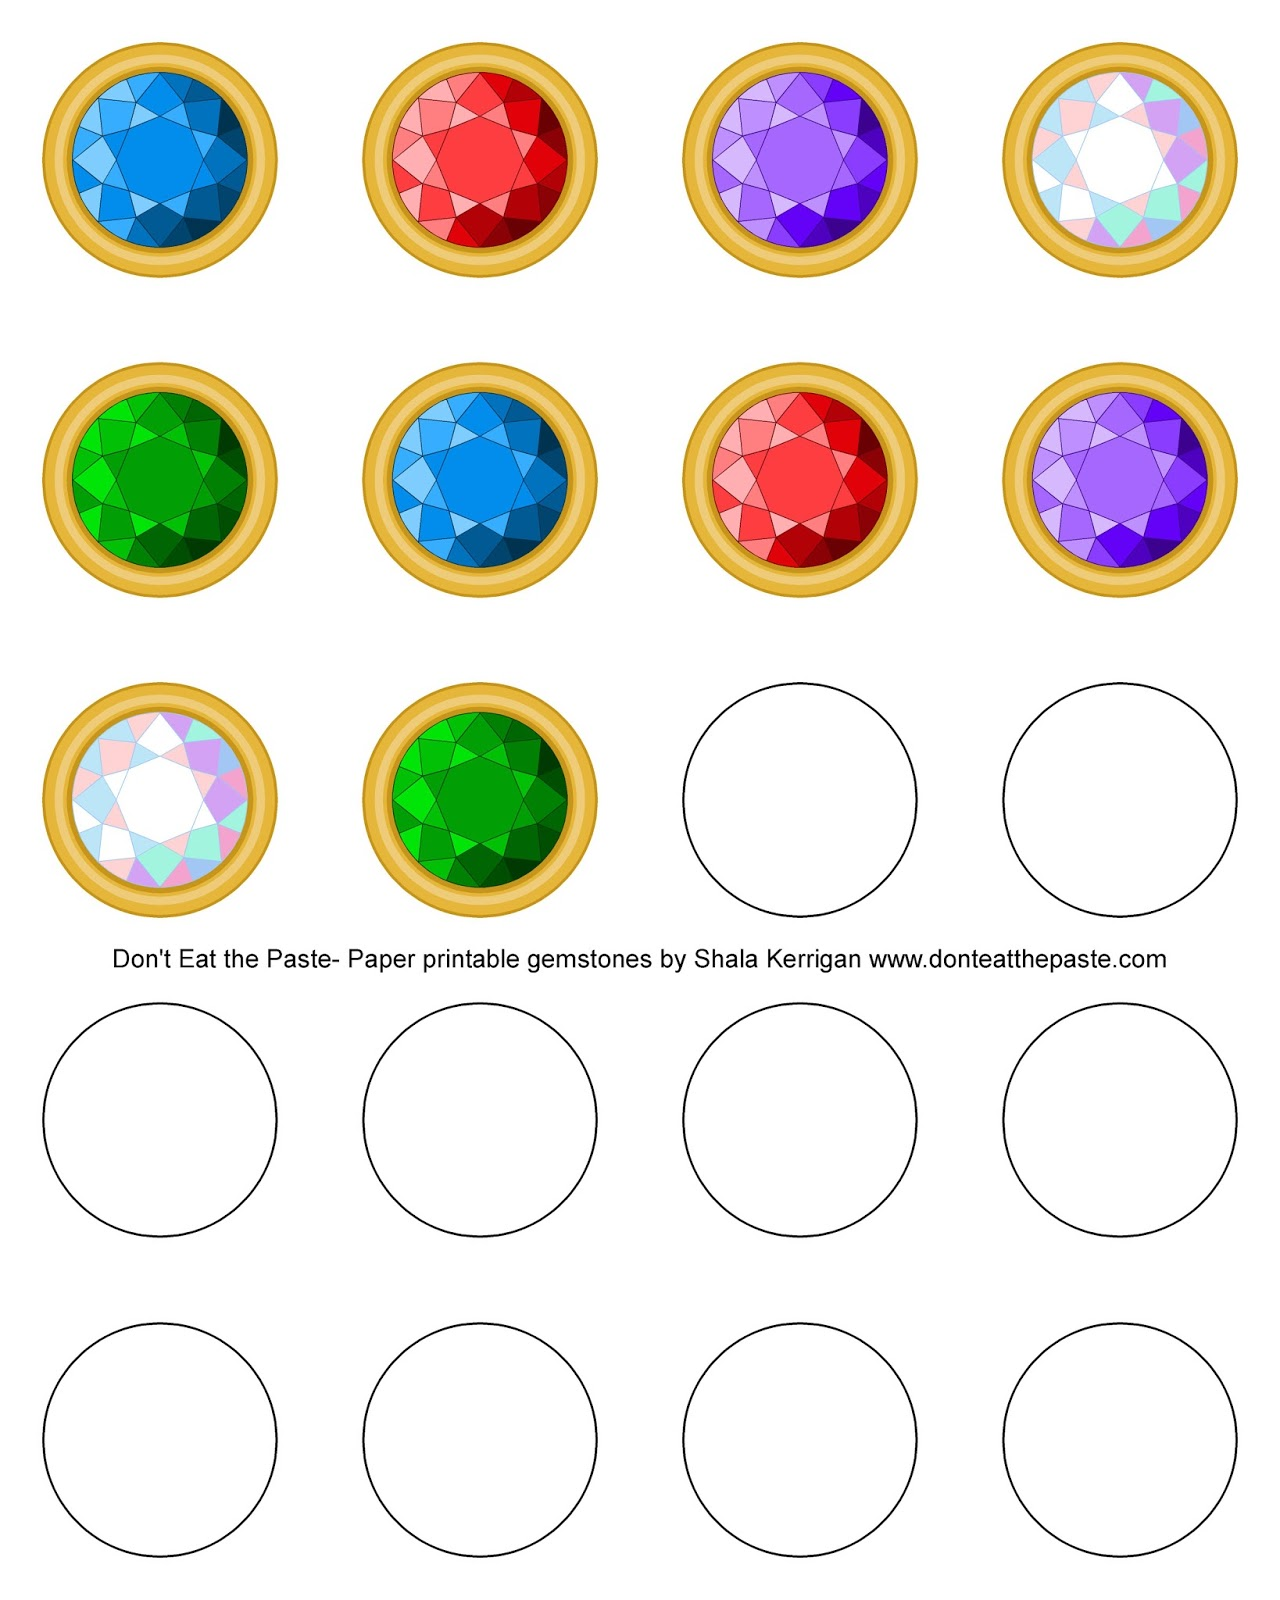 Printable gemstones